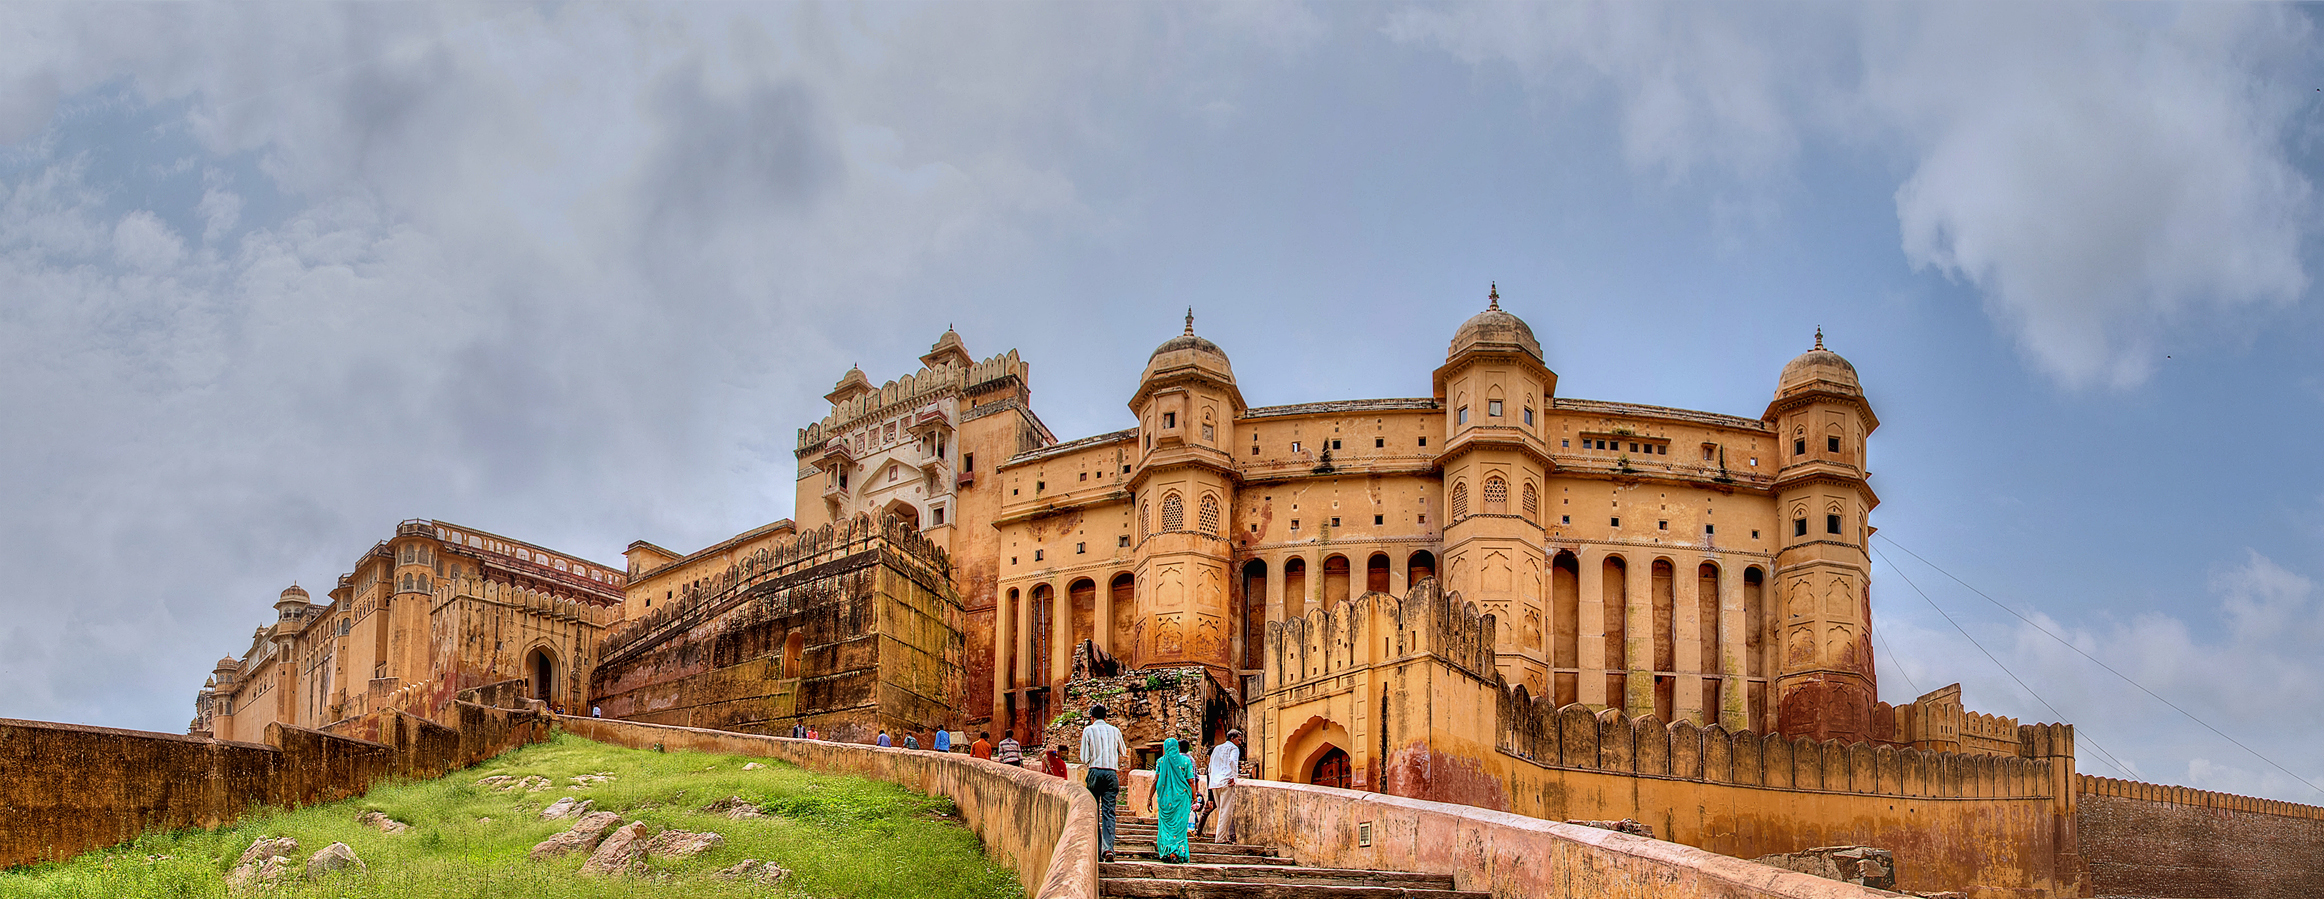 3 heritage places to visit in Rajasthan: Amber Fort at Jaipur india